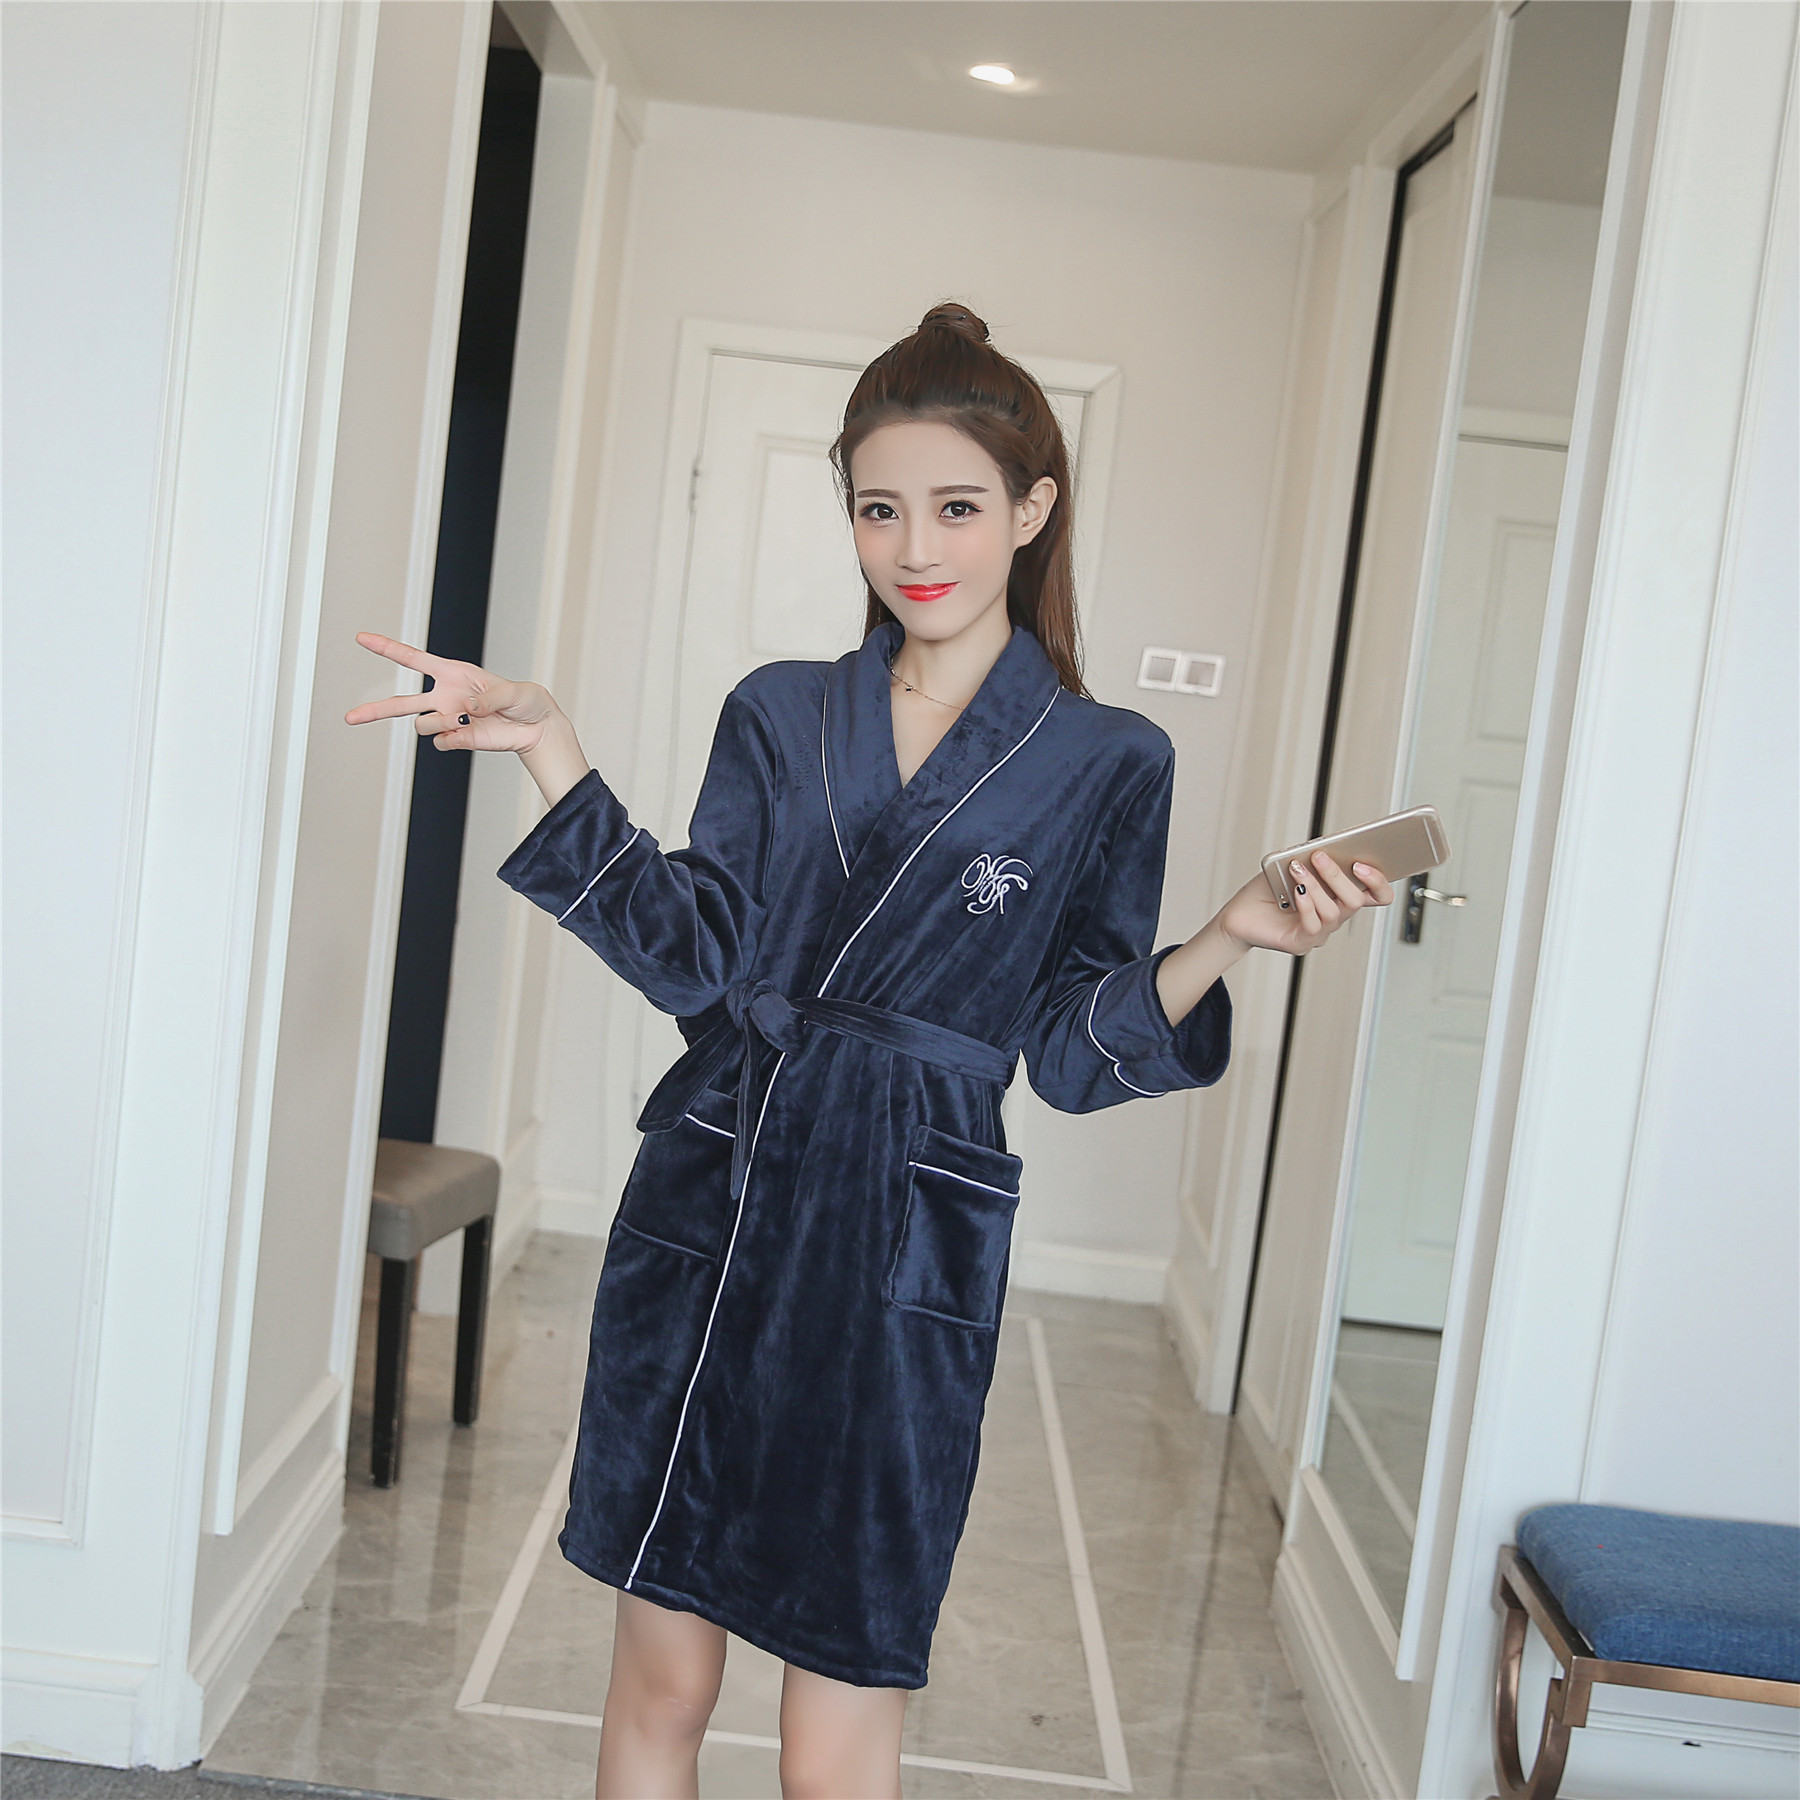 Autumn  Femme Capuche Women Badjas Night-robe Winter Women's Long Gown Lady Men Badjas Dames Hotel Bridal Warm Robes